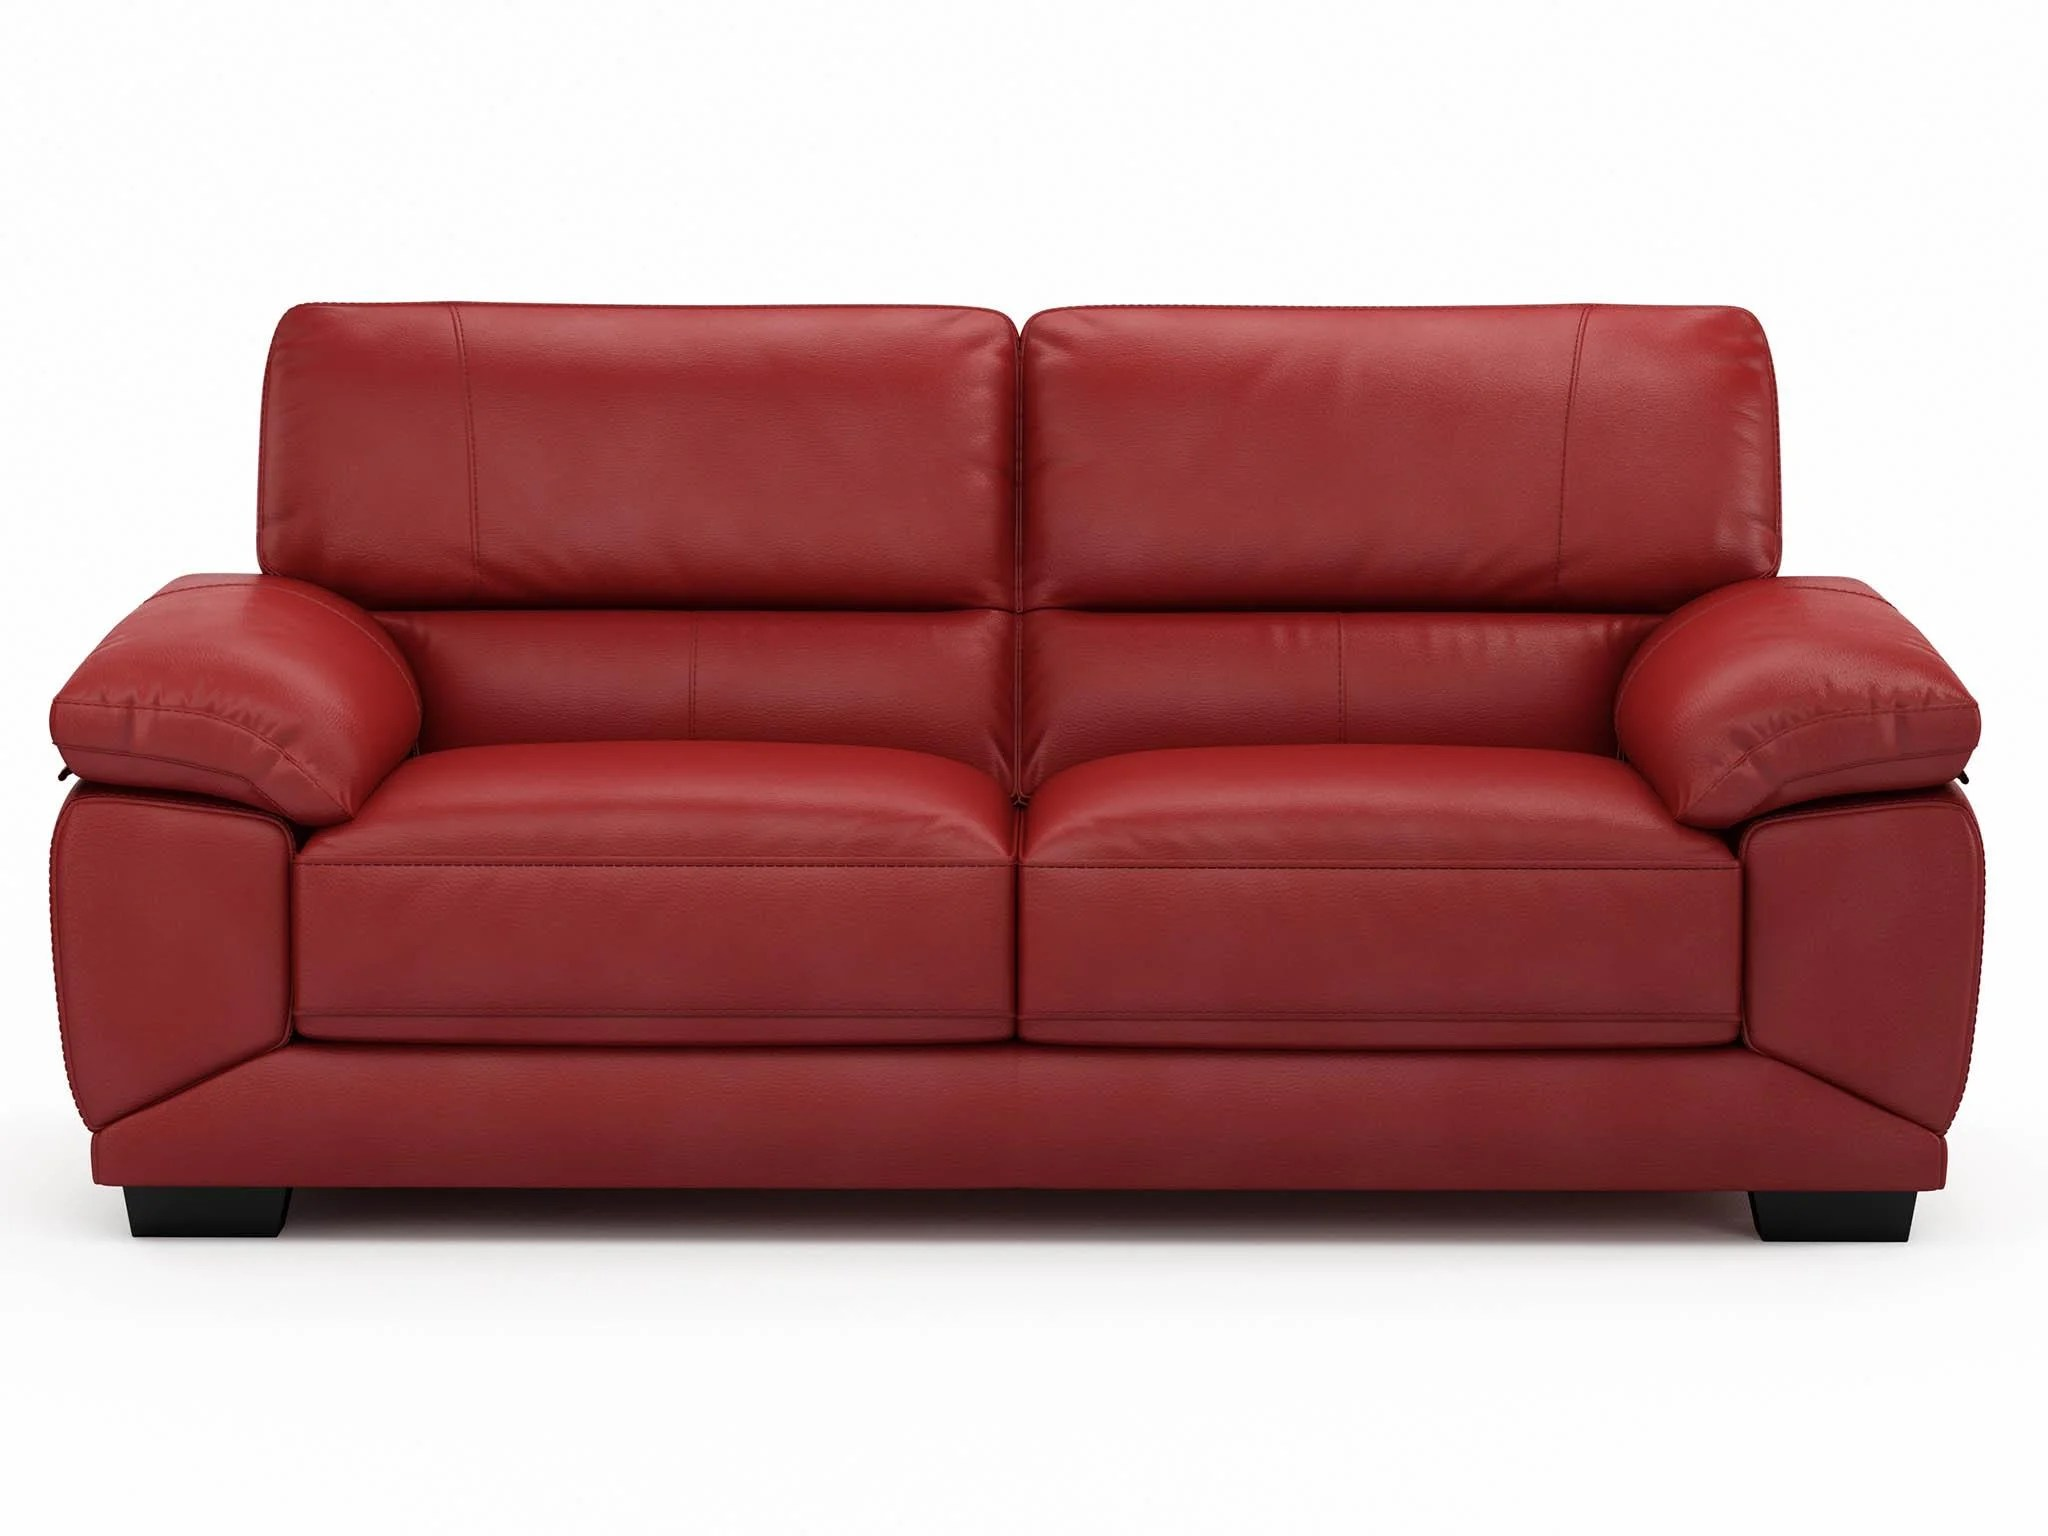 the leather sofa company uk american sleeper sheets 10 best sofas independent vixen three seater 499 harveys this classic